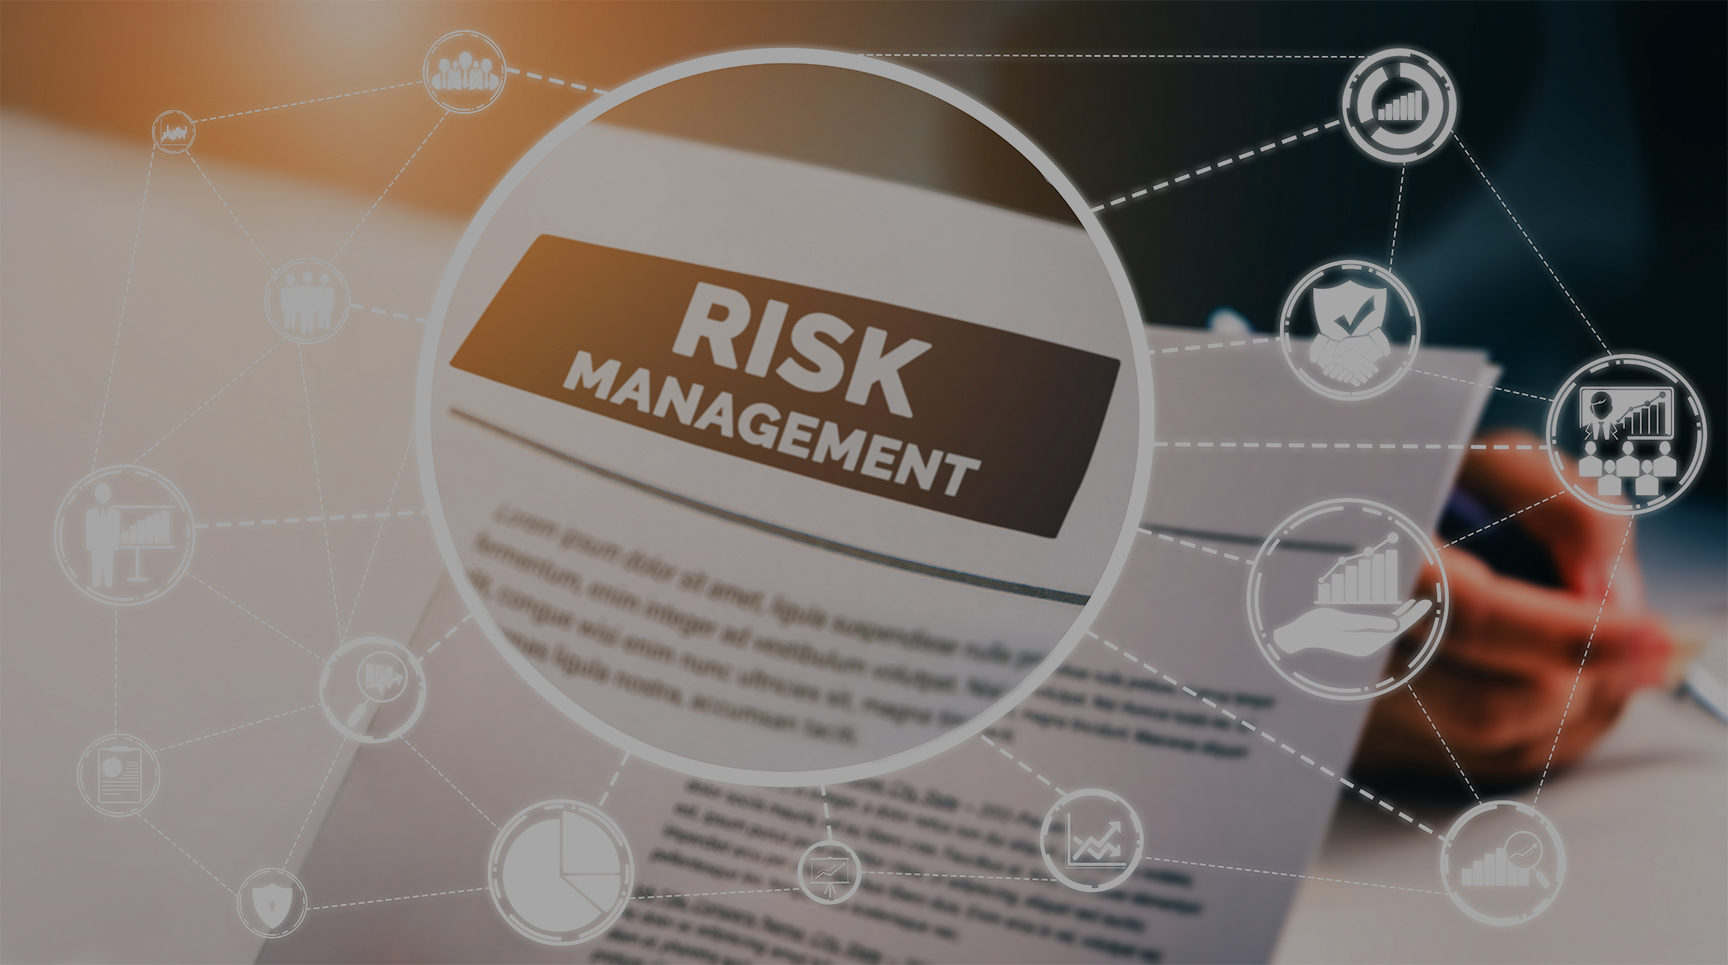 An image representing Valiant's Risk Management Framework services